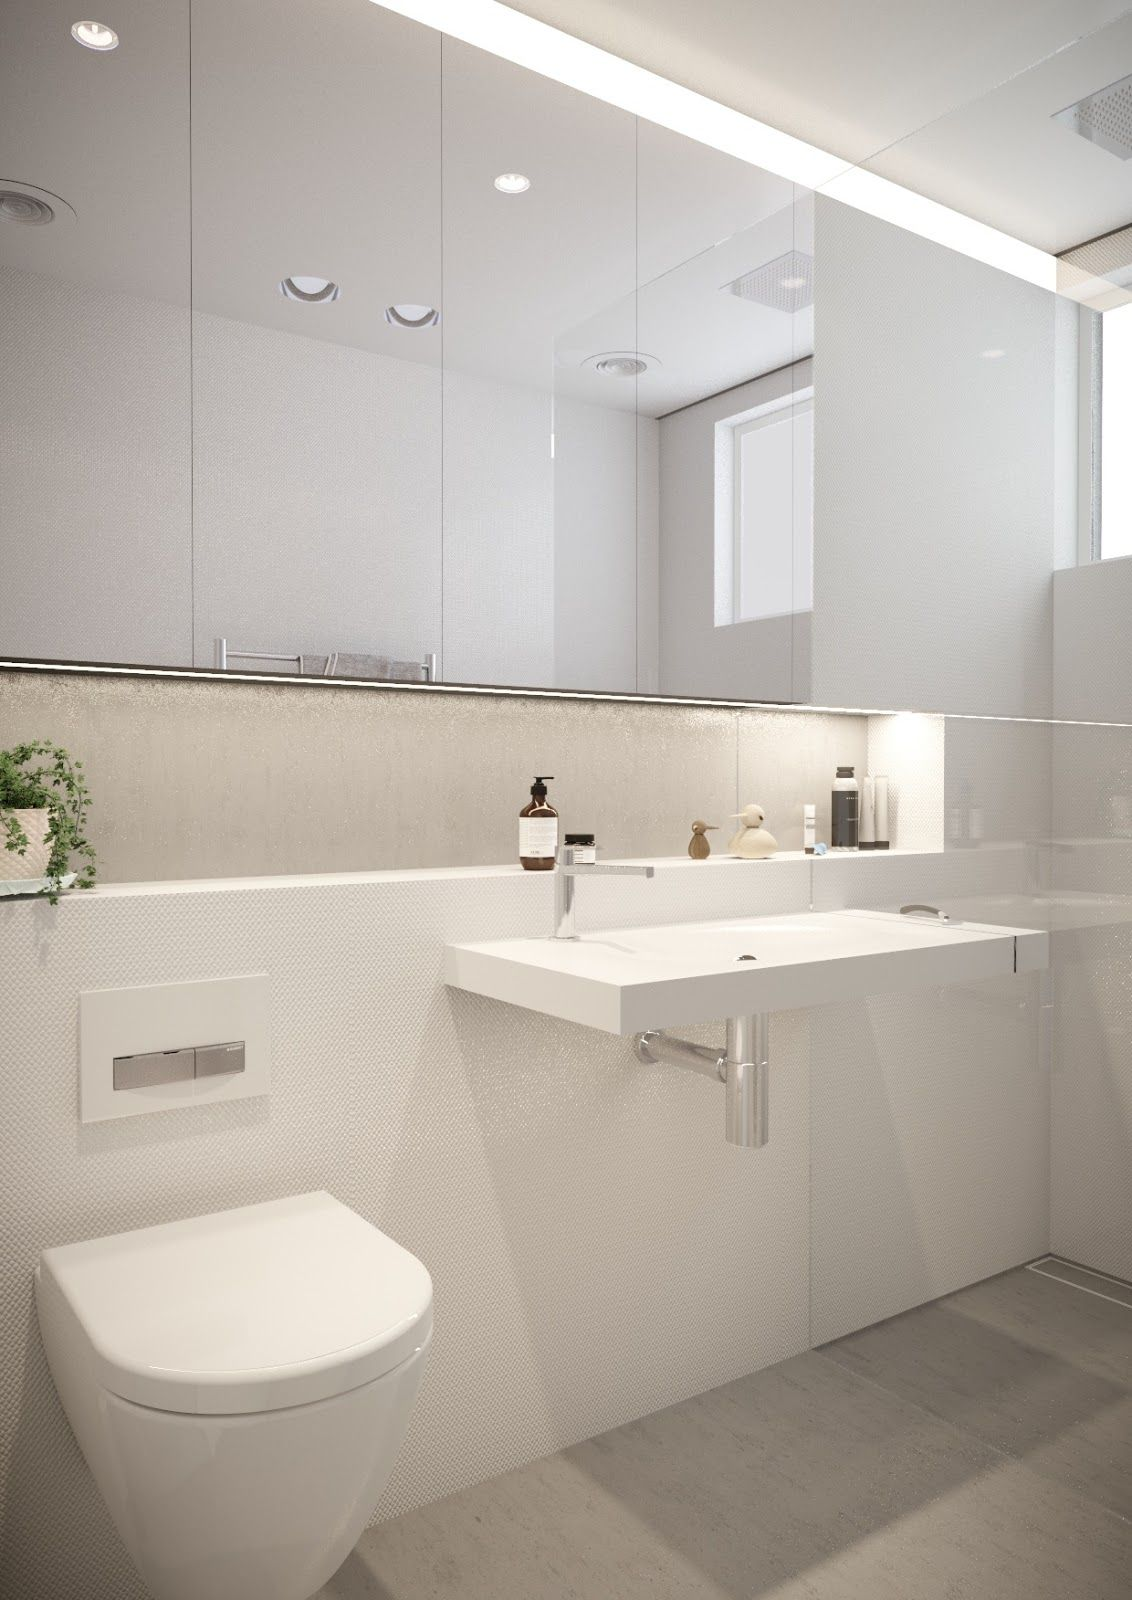 Modern kitchen and bathroom design solutions.award winning design ...